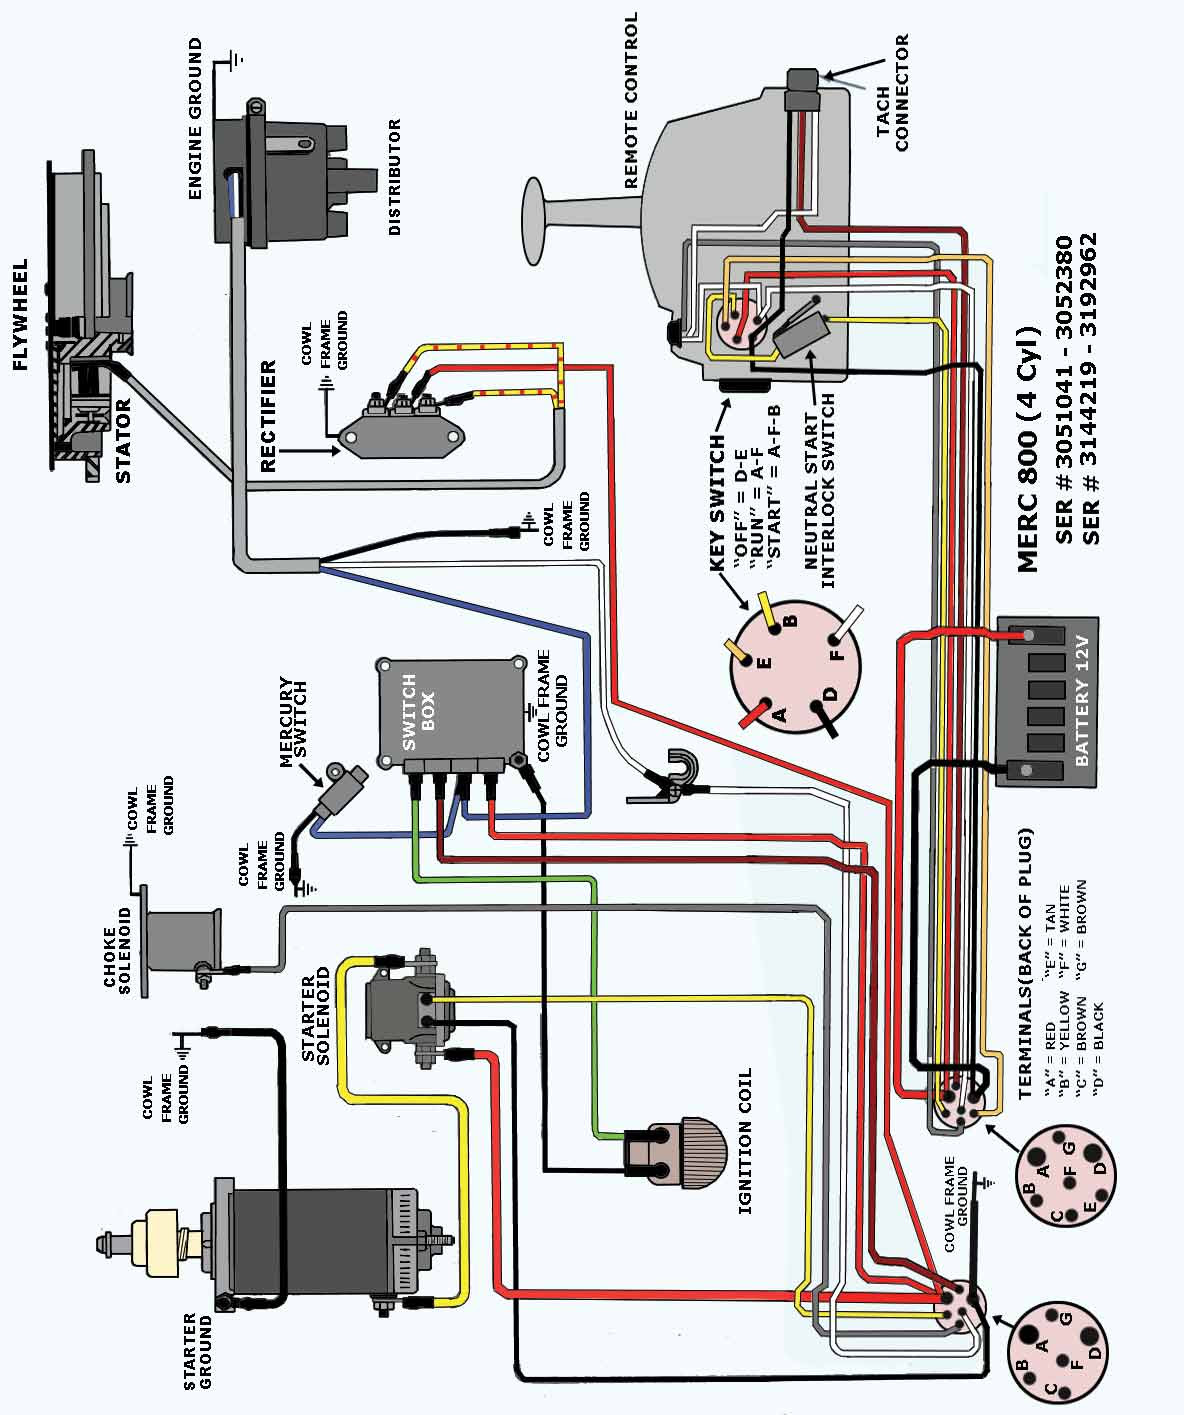 Diagram 48 Mercury Wiring Diagram Full Version Hd Quality Wiring Diagram Reddiagram17 Ritmicavco It